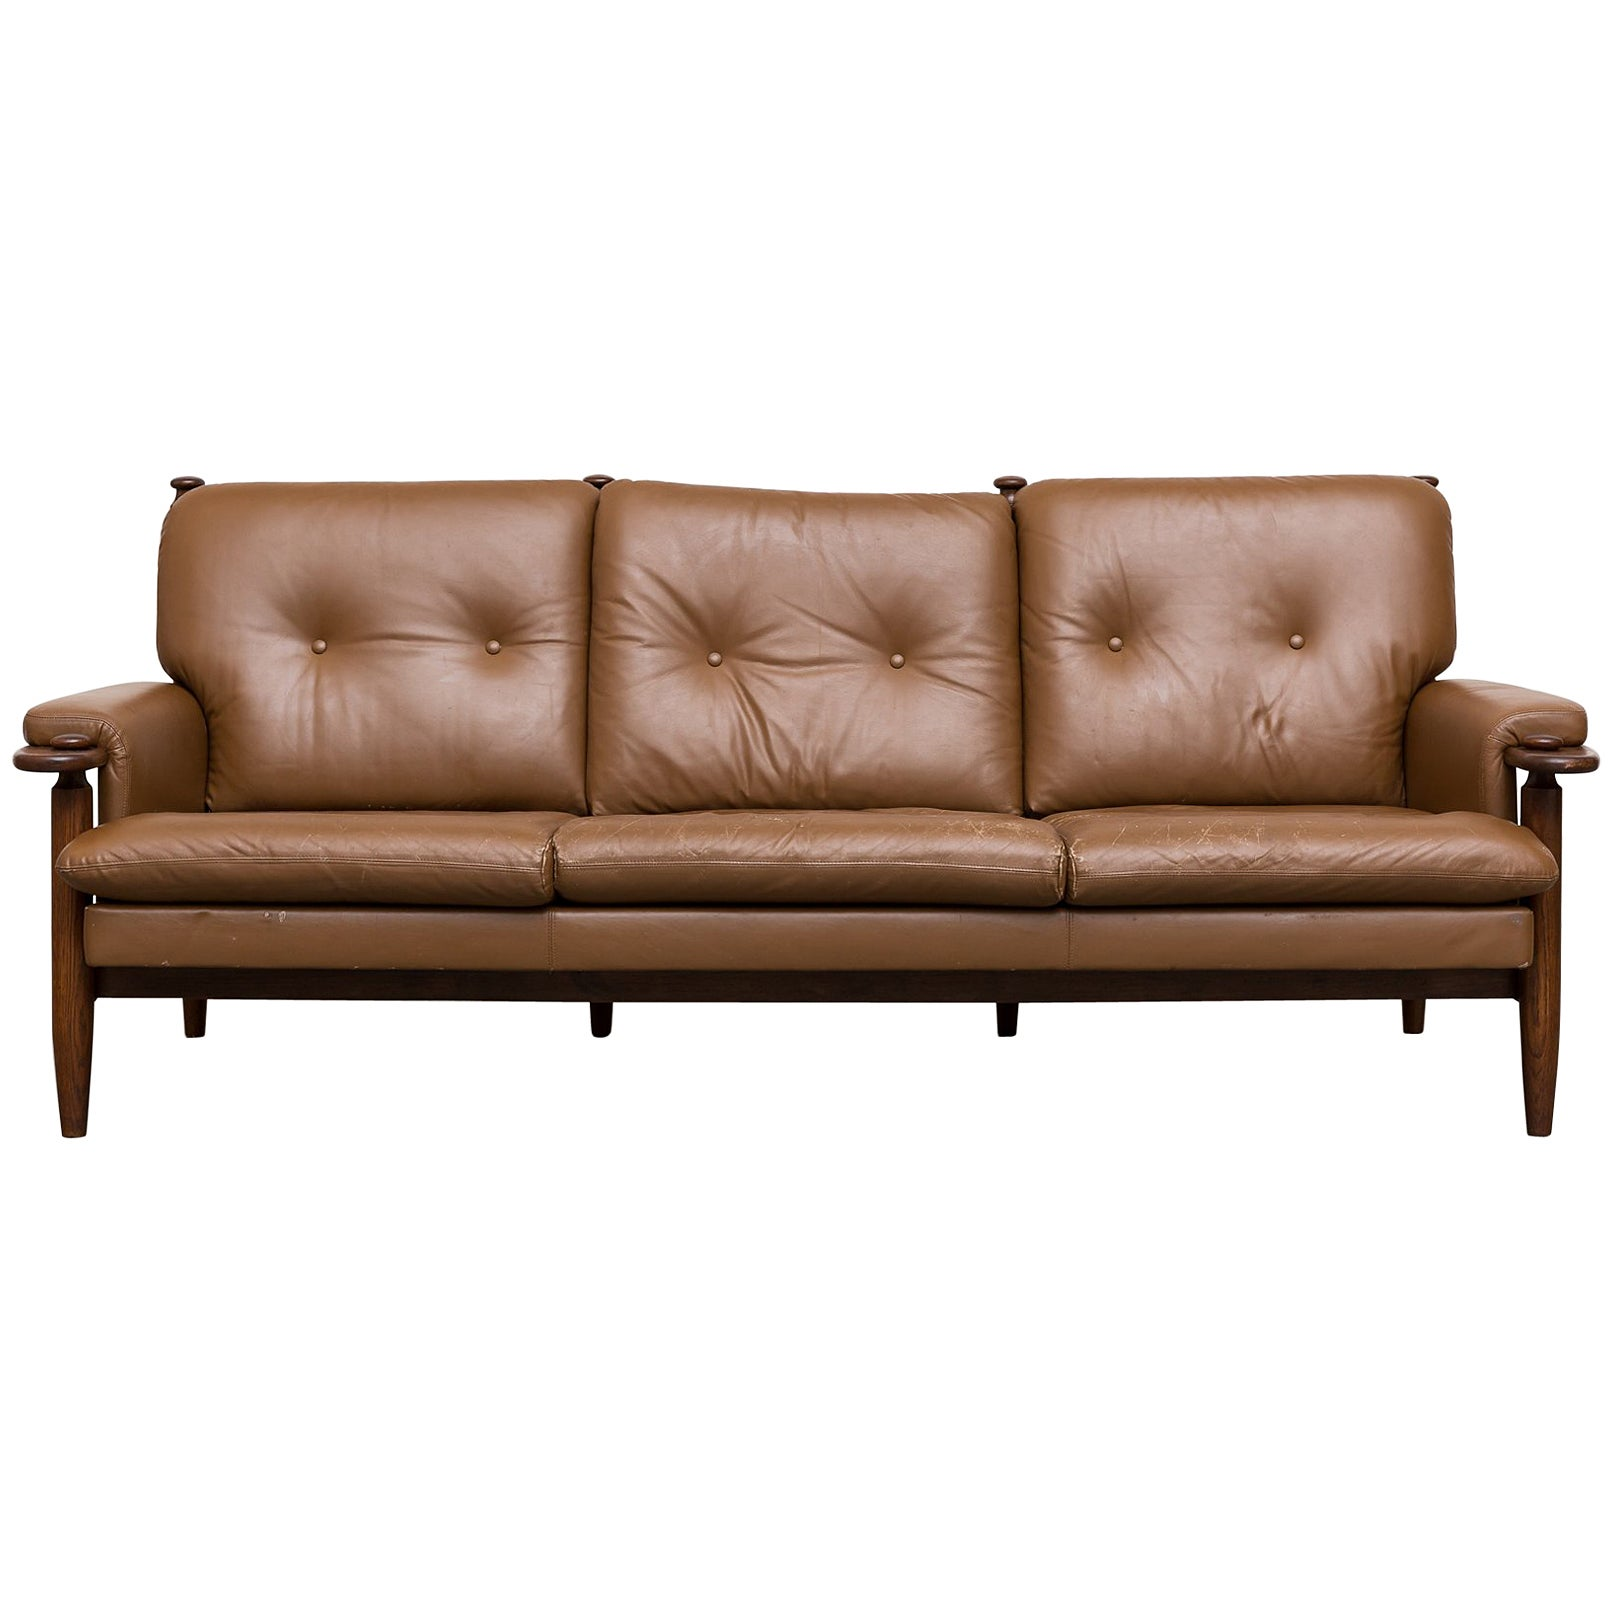 Scandinavian Leather Sofa with Leather Strap Supports at 1stdibs